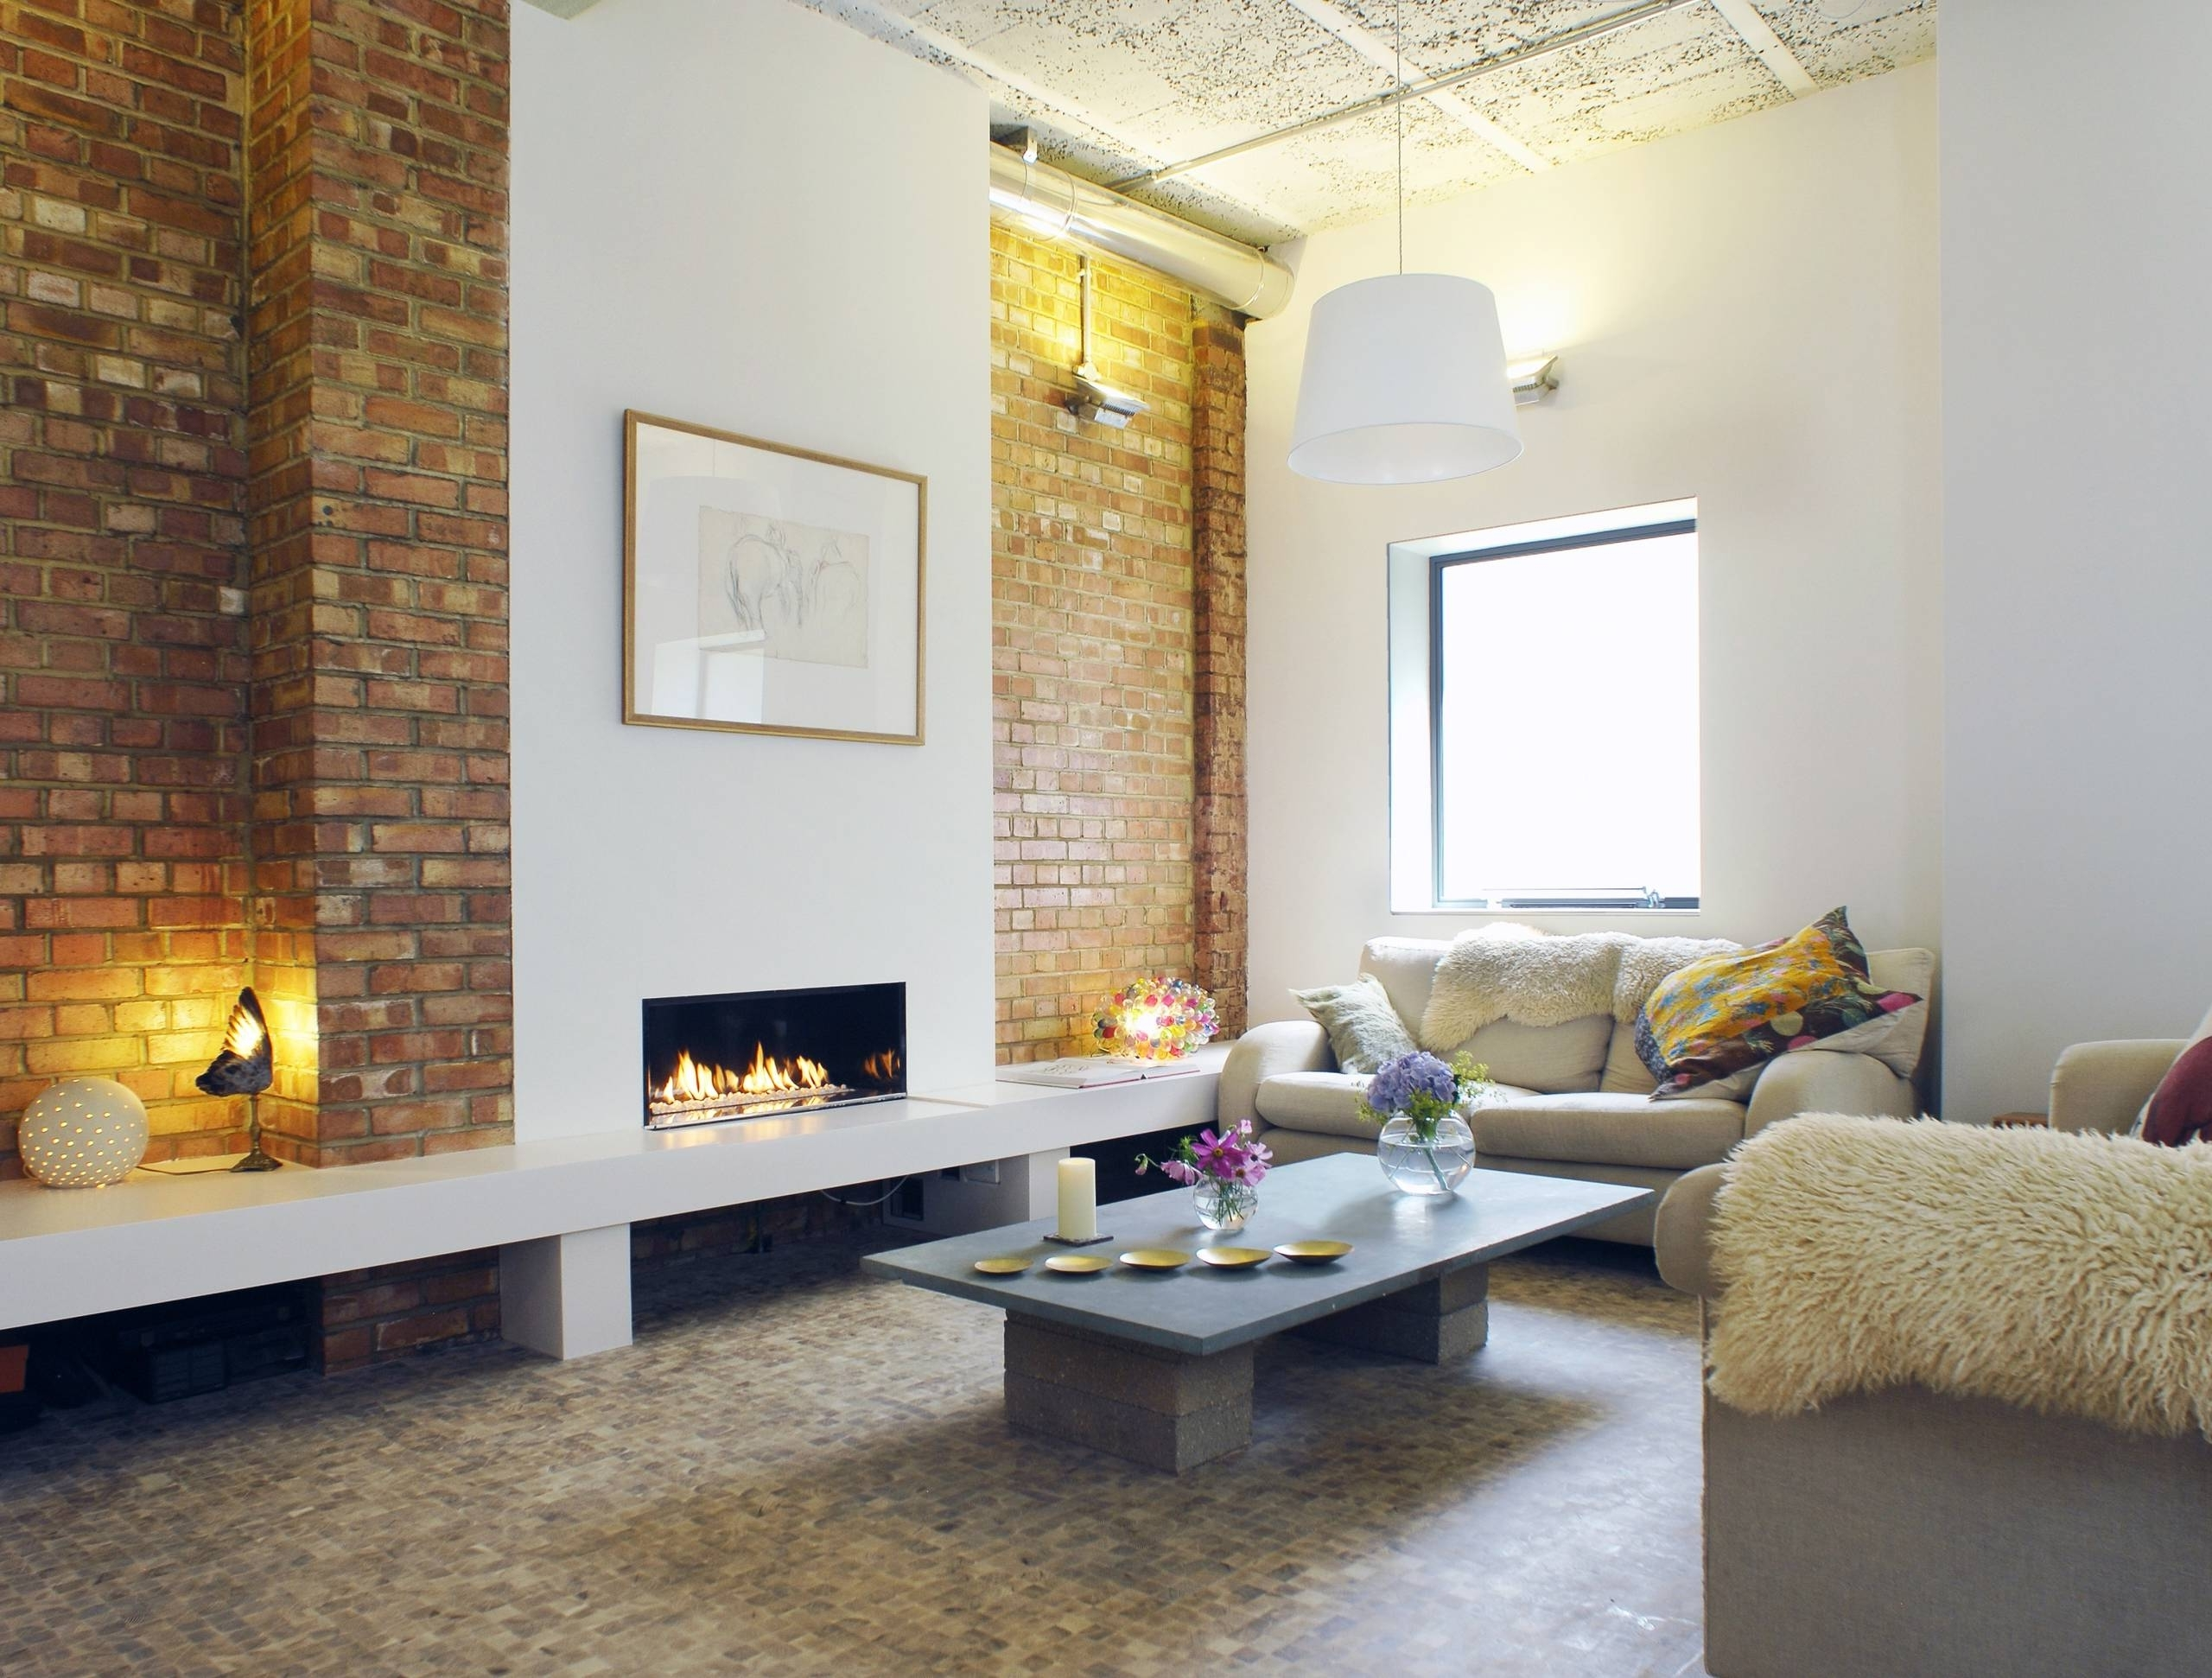 Chimney Breast Contemporary | Houzz 10+ Small Living Room With Chimney Breast Inspirations